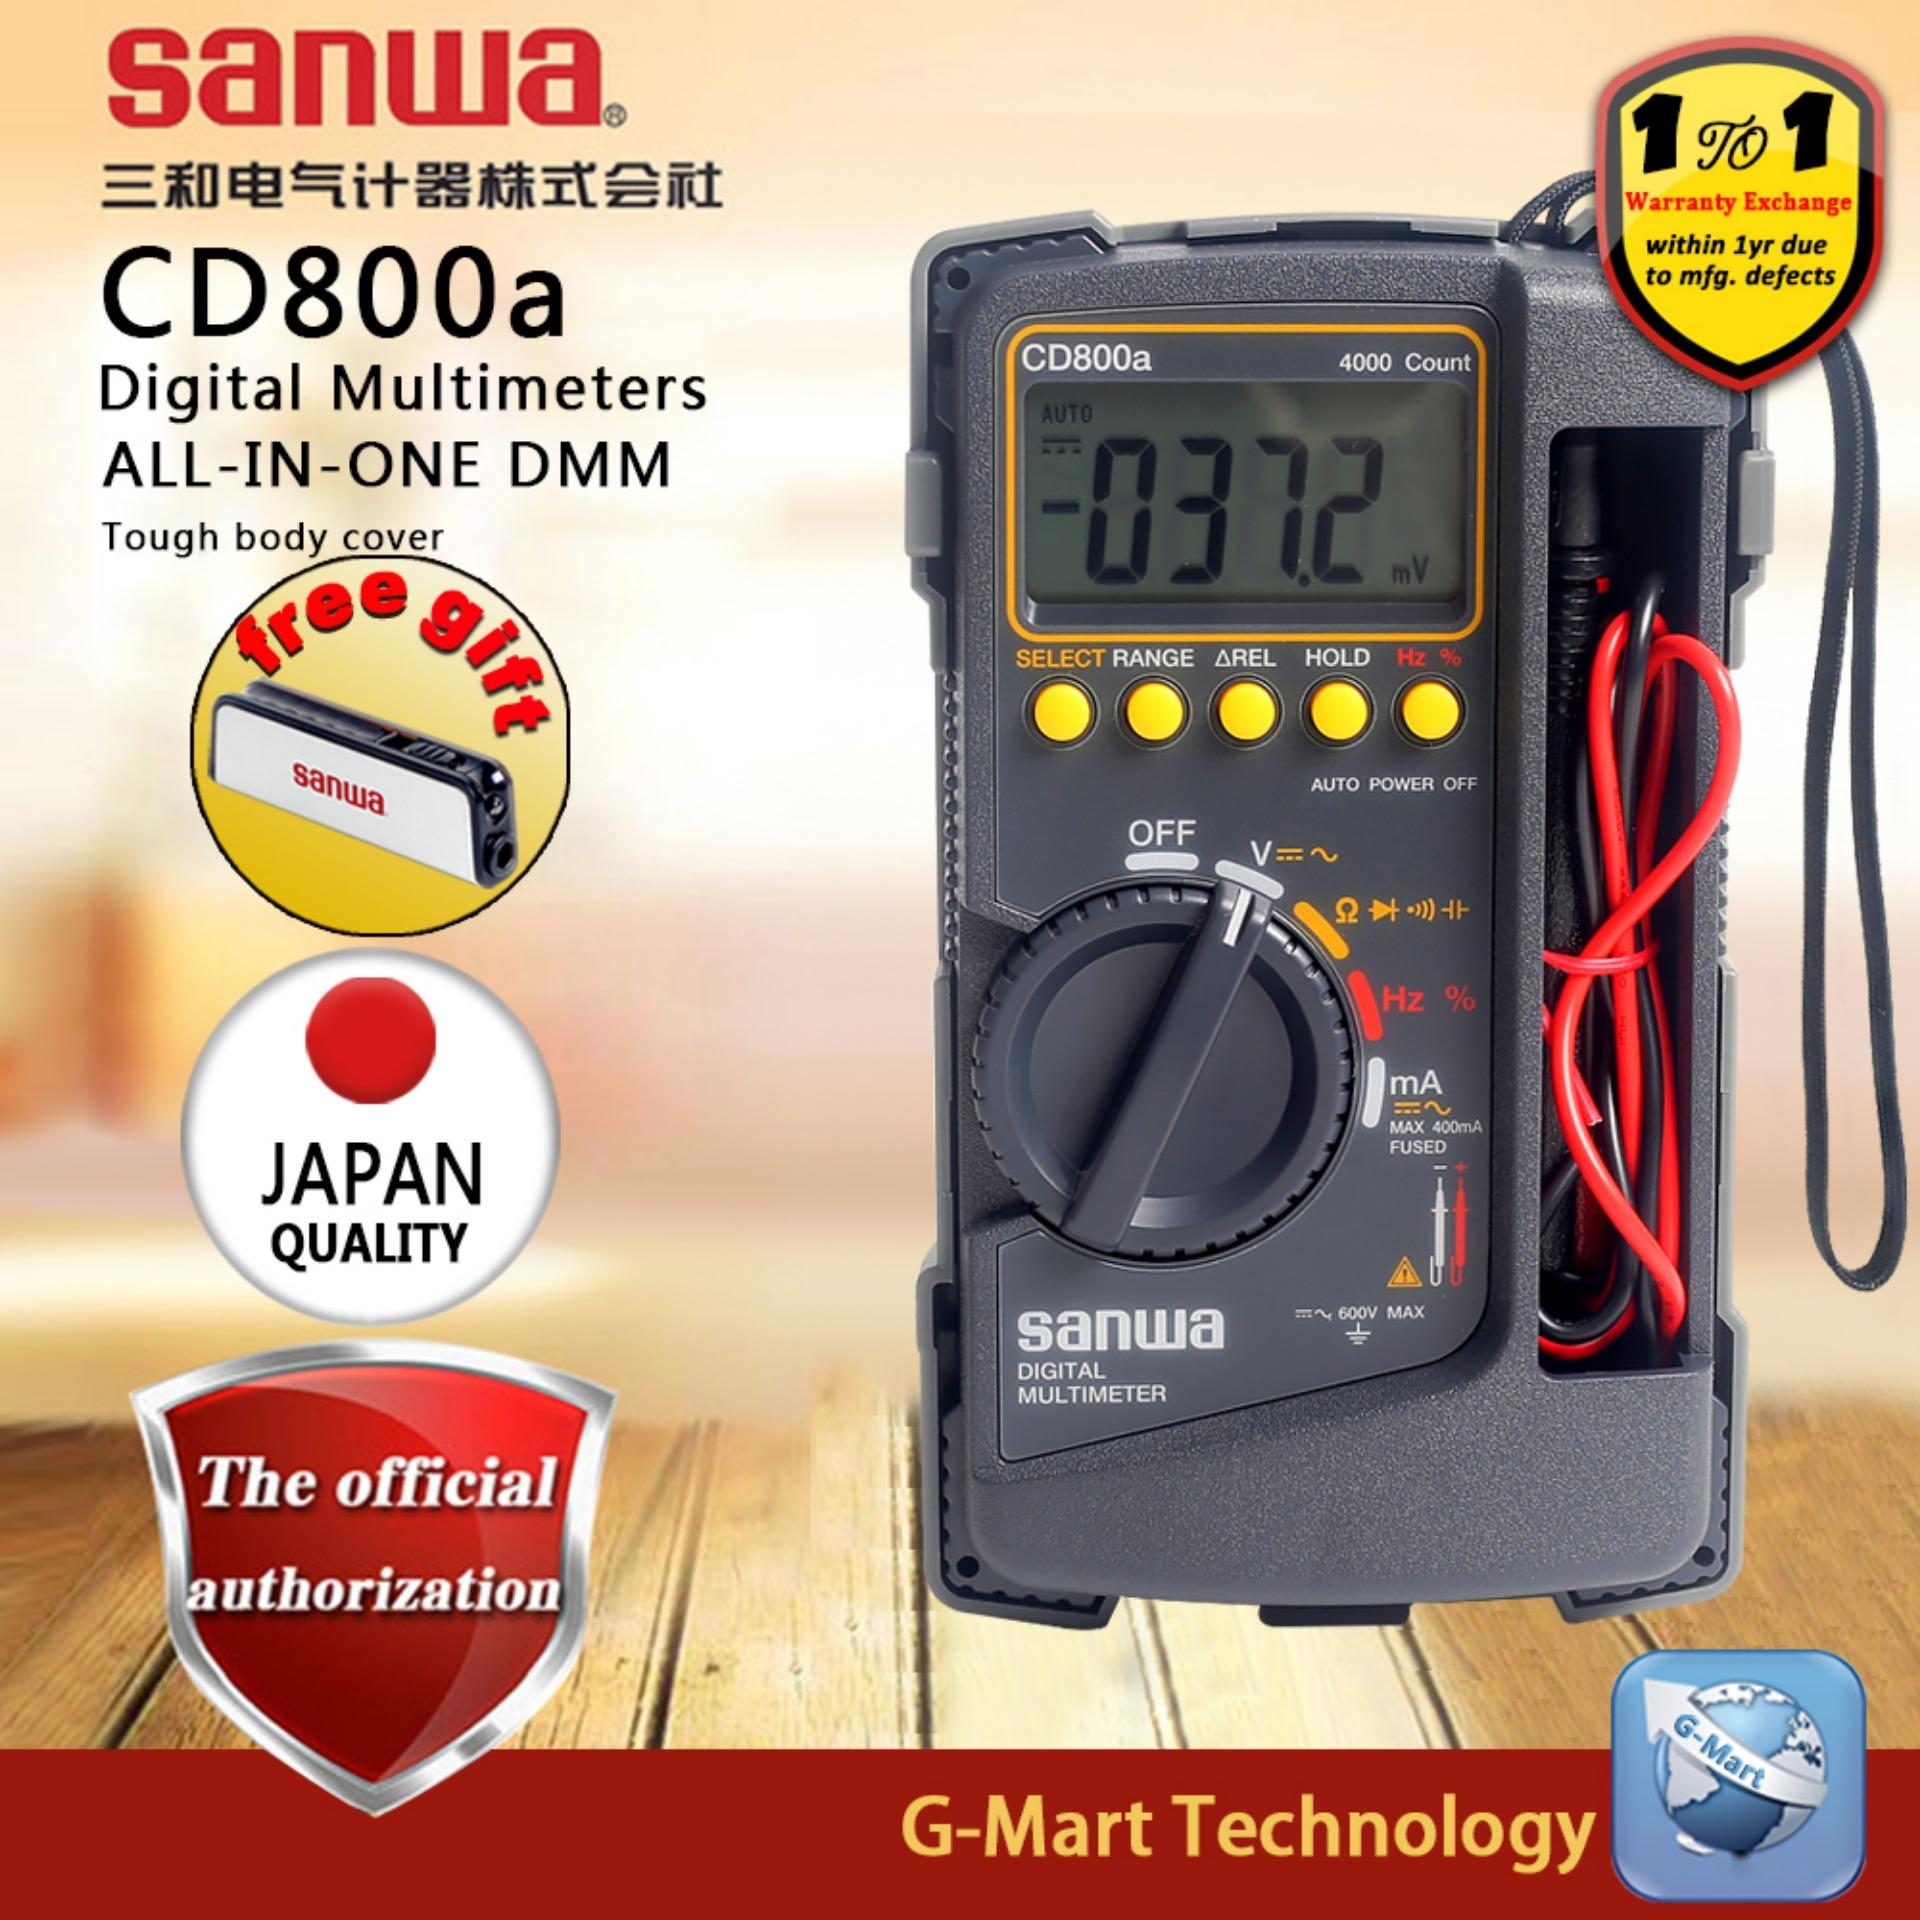 Sanwa Cd800a Digital Multimeter Dmm 4000 Volt Counter Tester Meter By G-Mart.